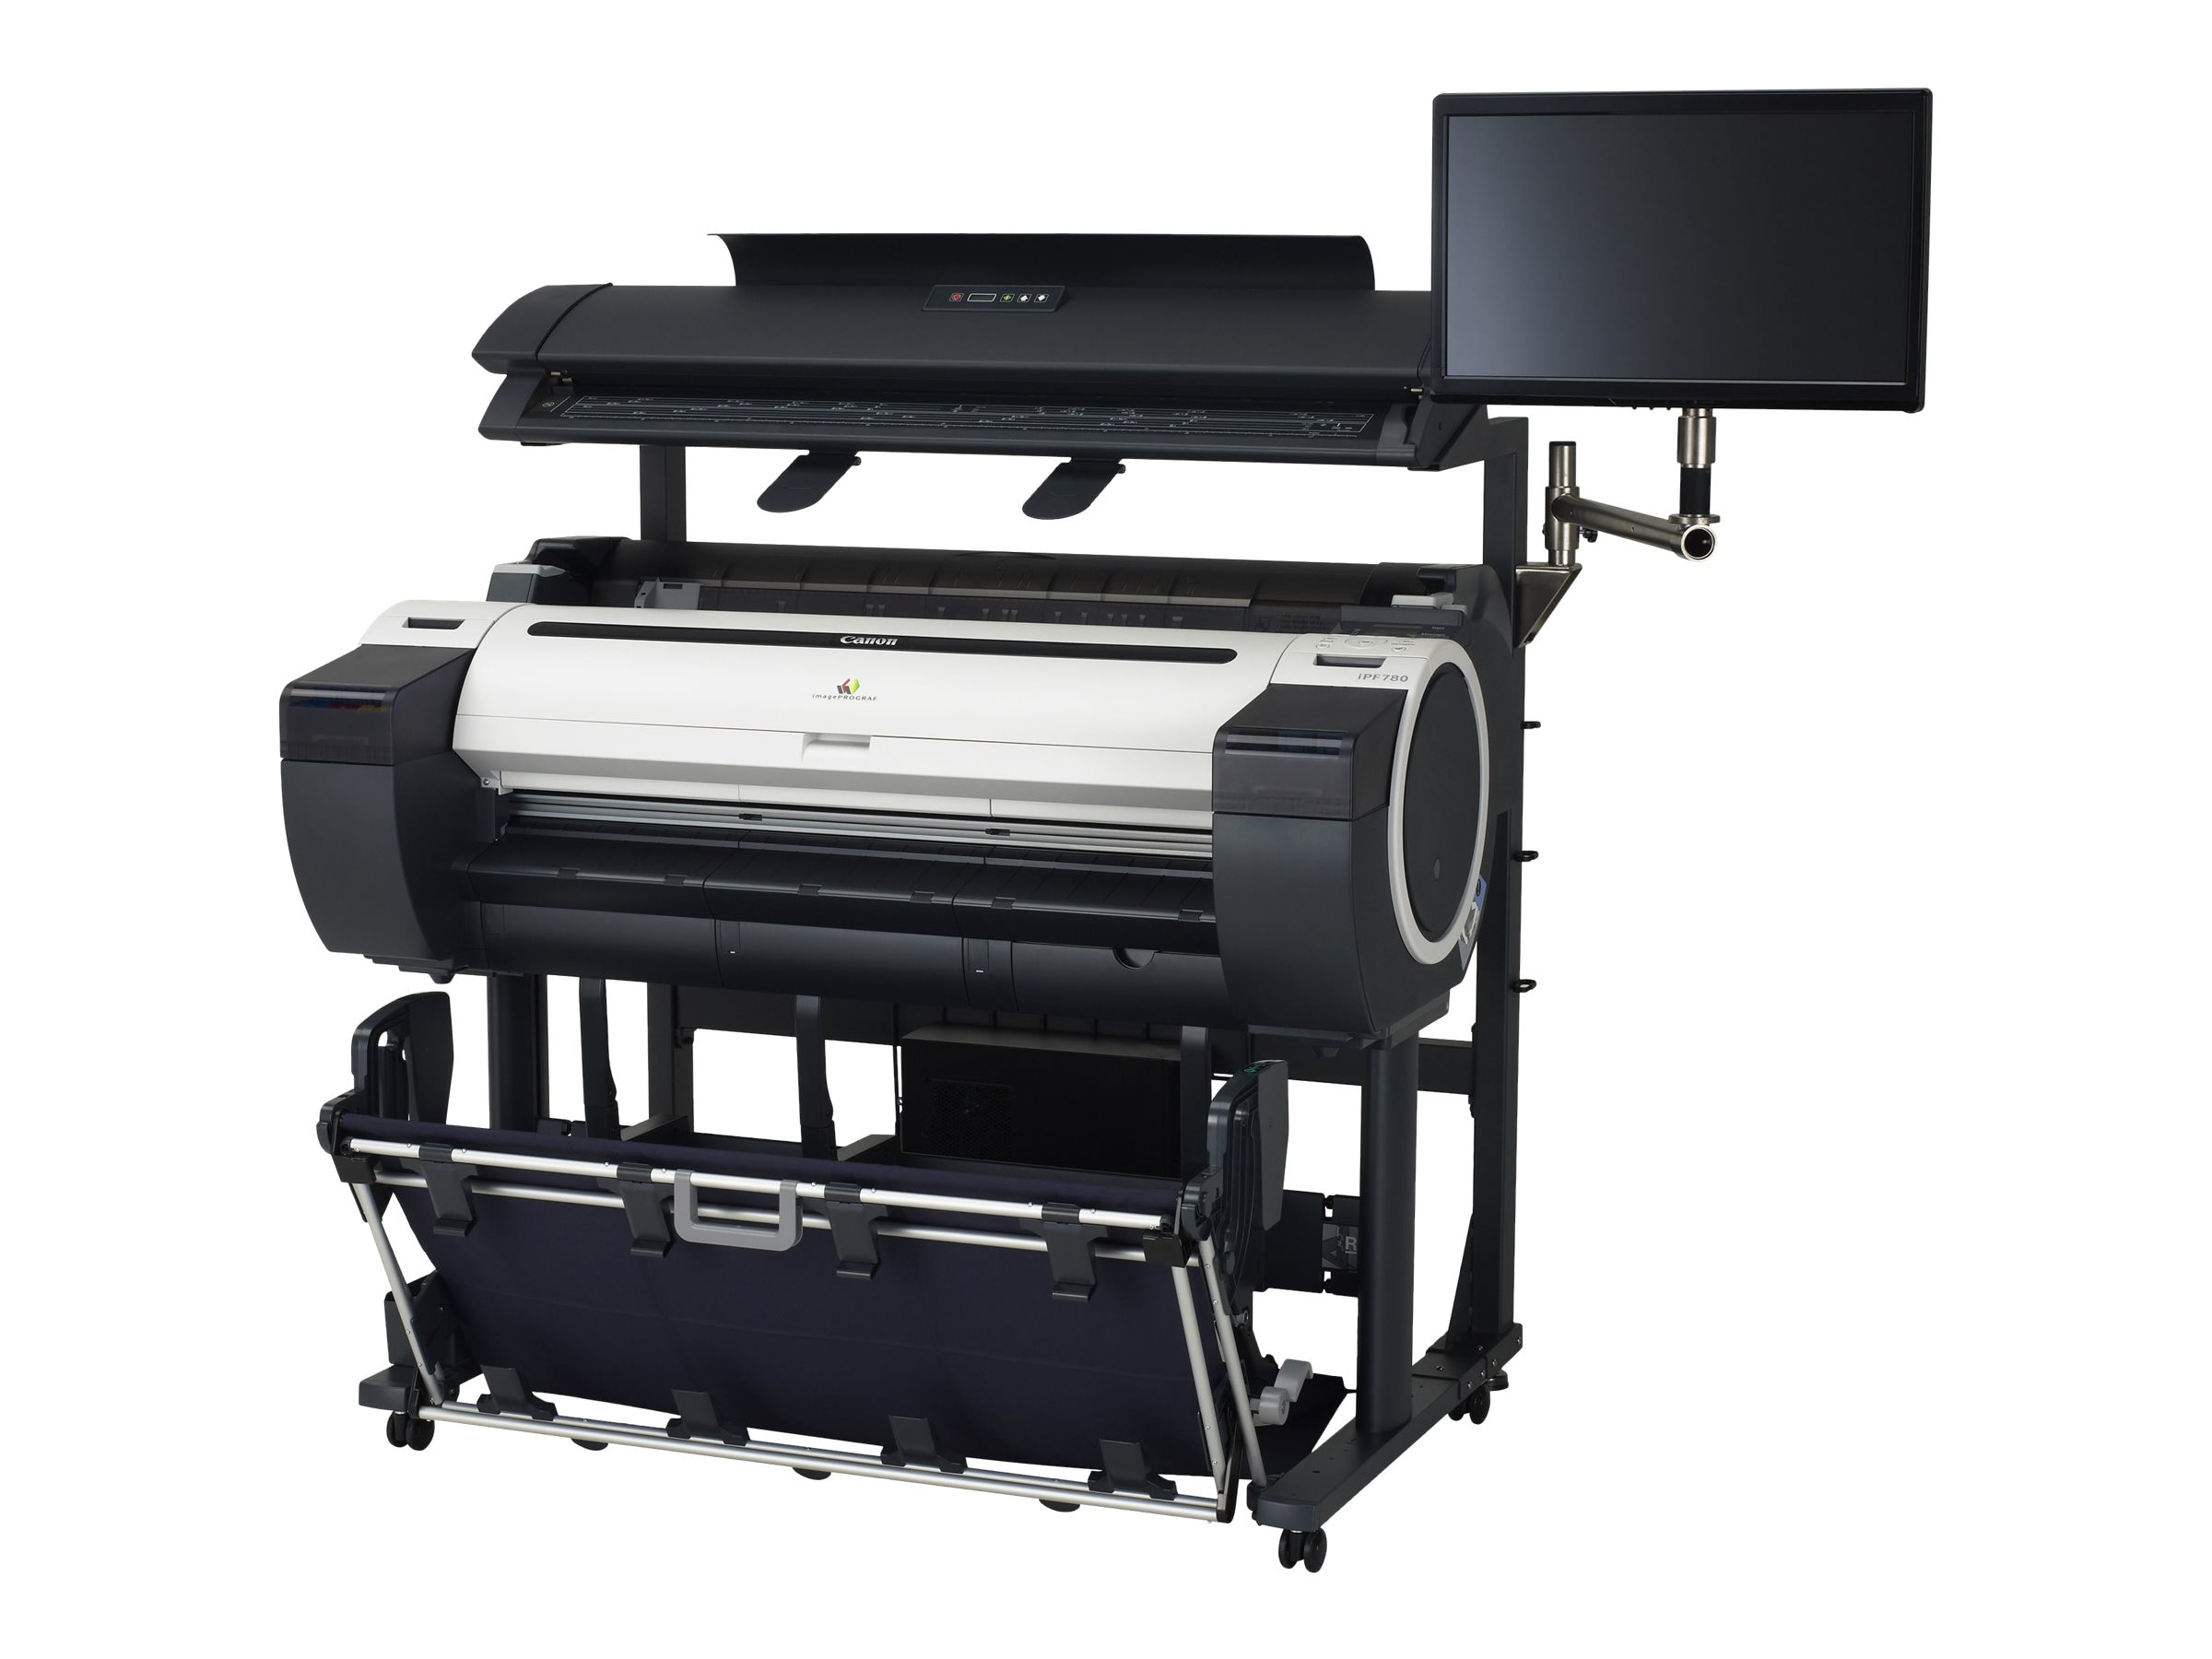 Canon imagePROGRAF iPF780 Large-Format Color Printer